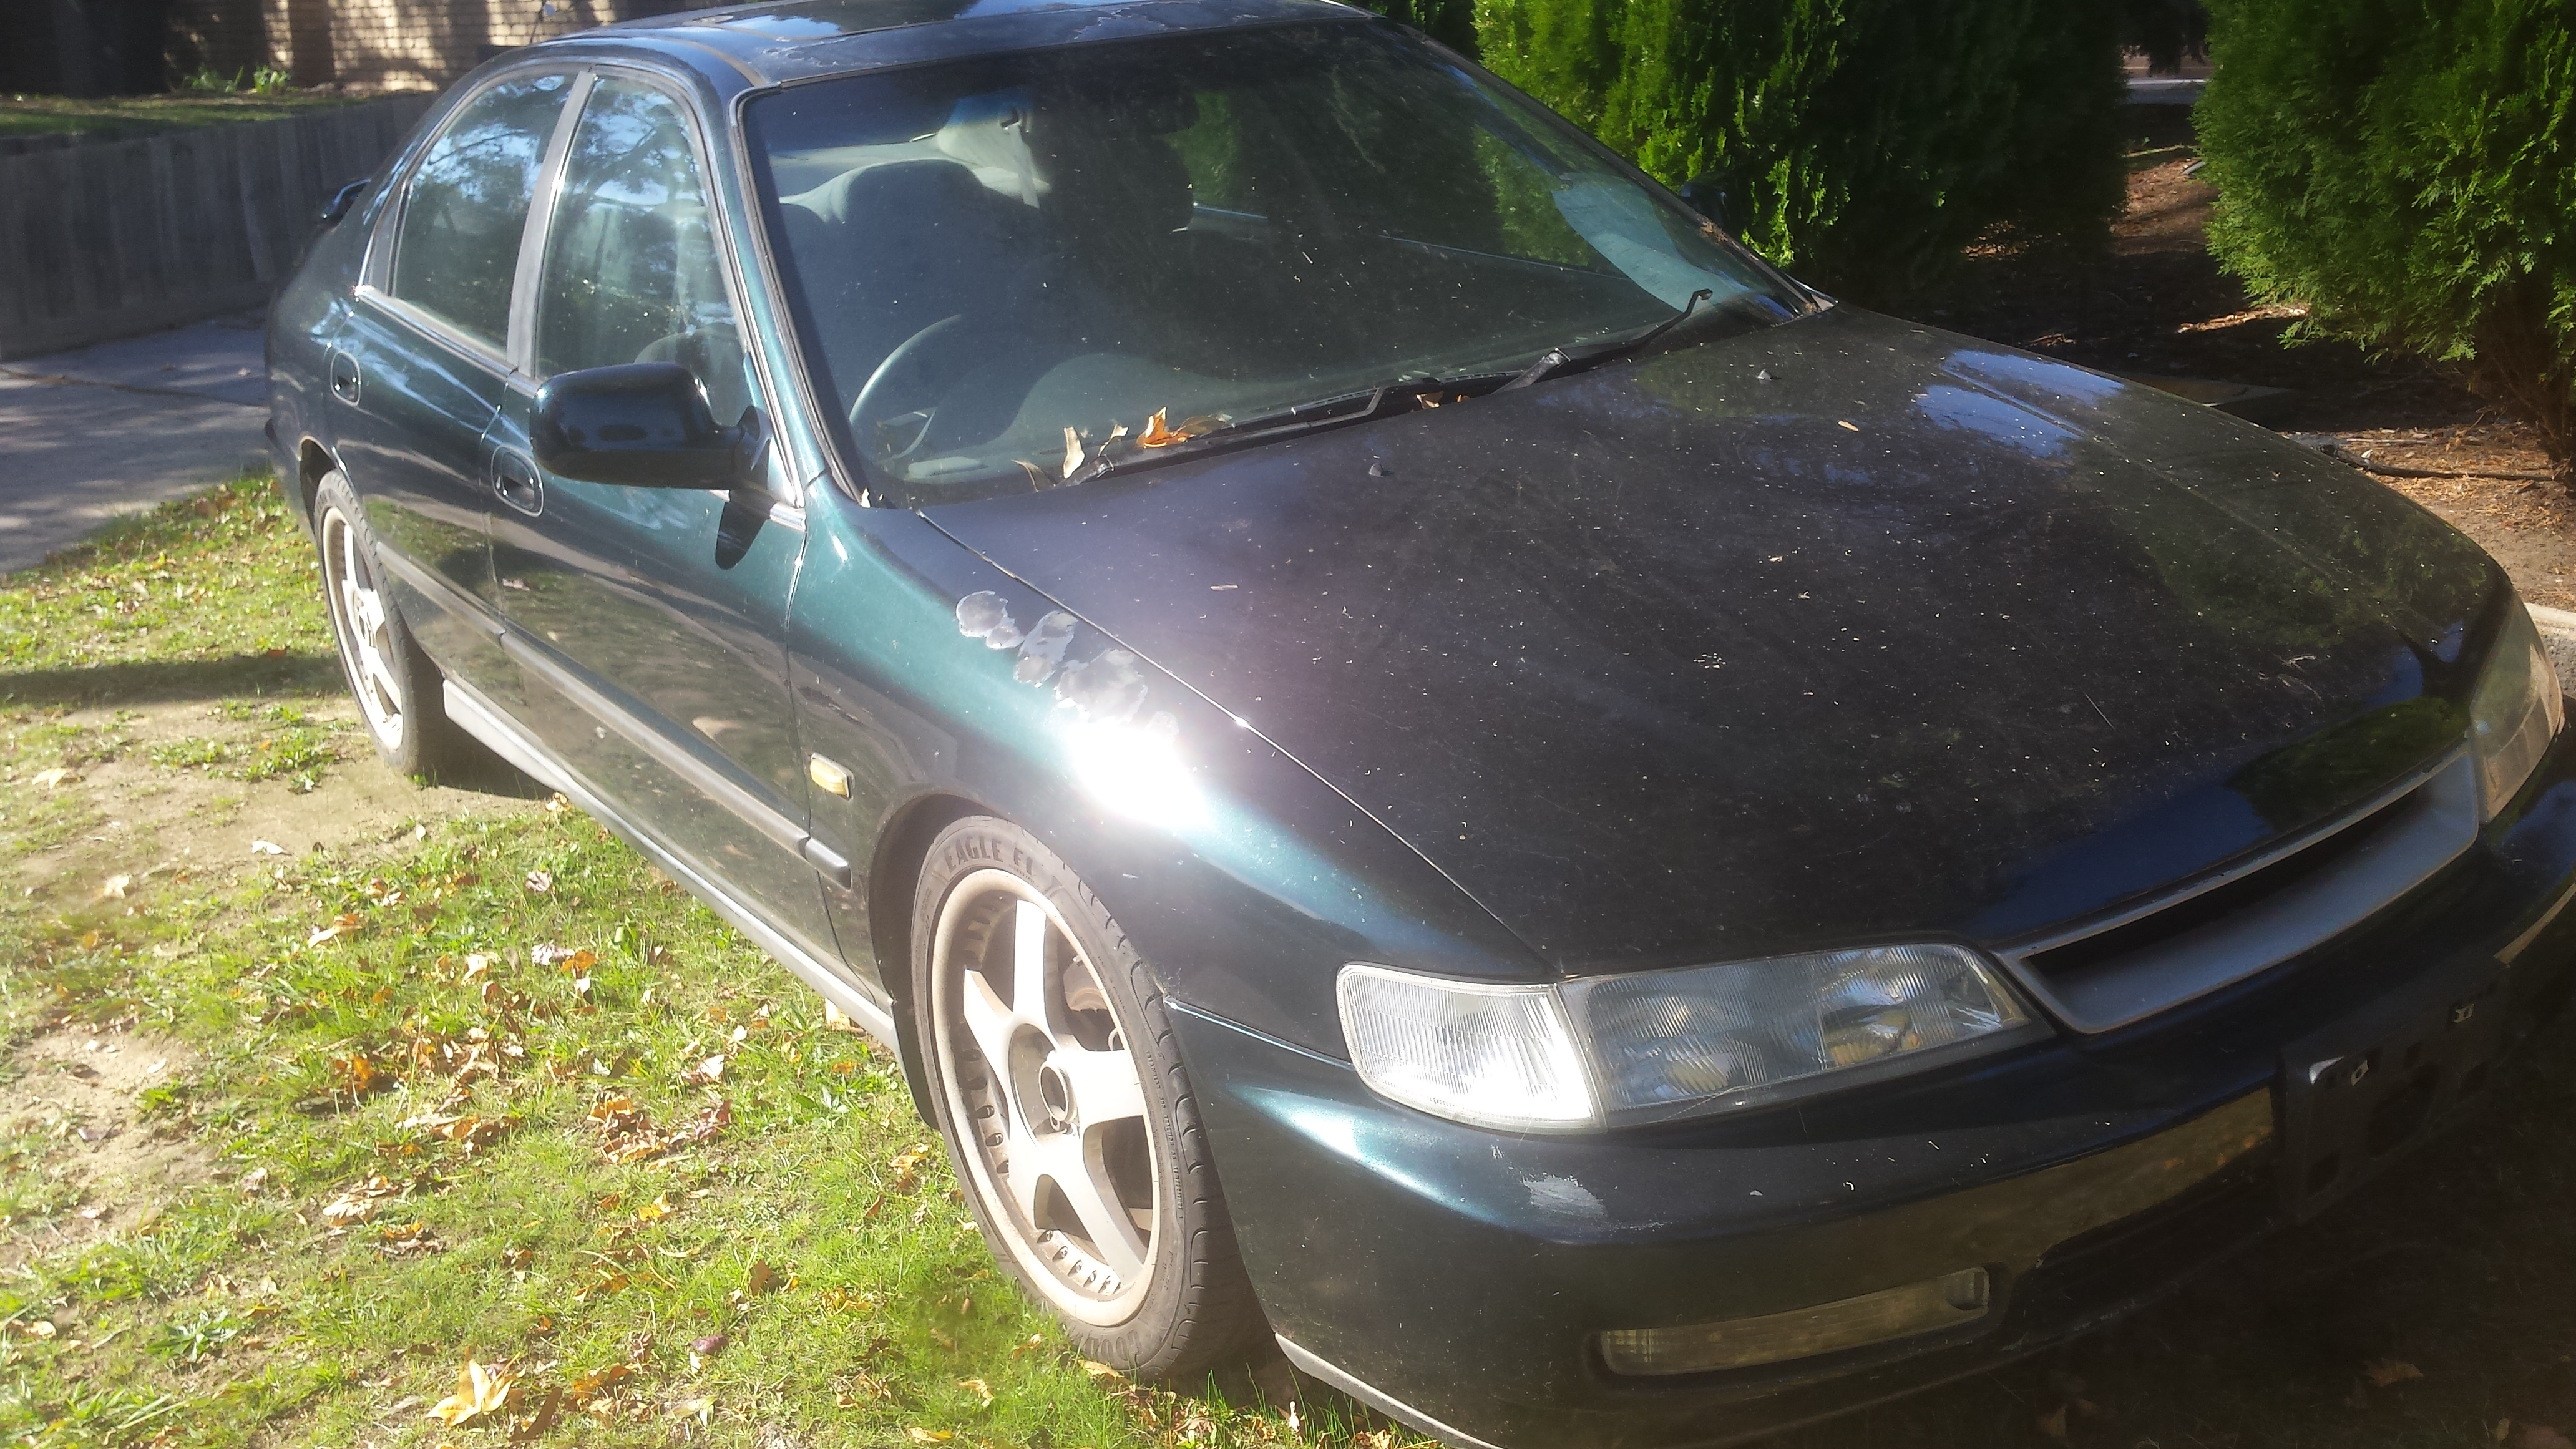 1996 honda accord car sales vic melbourne 2939838 for Used car commercial 1996 honda accord